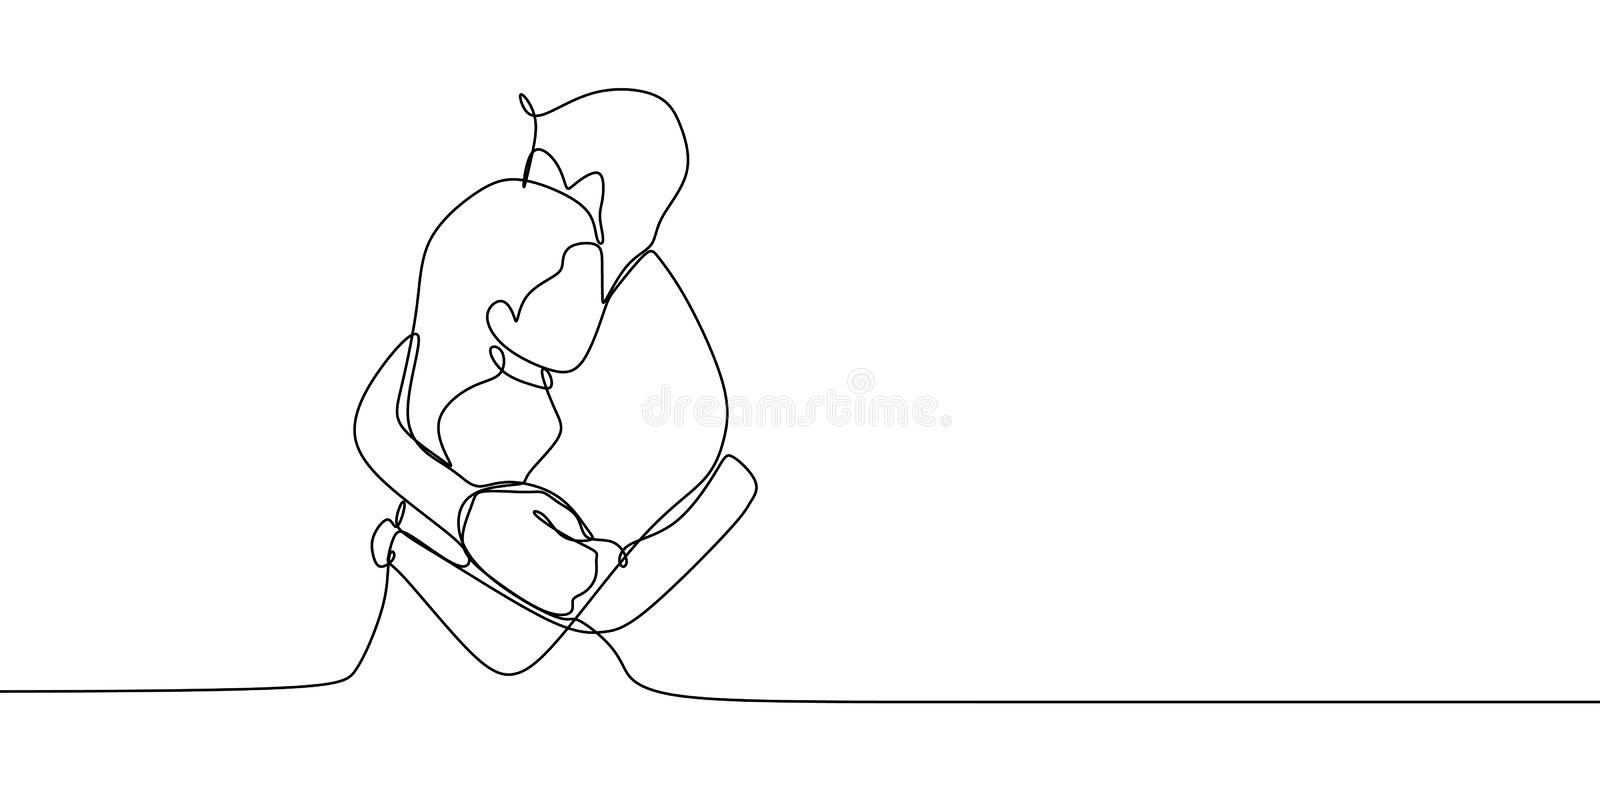 Continuous line drawing of a couple hug vector illustration. Romantic concept of romance love design in minimalist style royalty free illustration